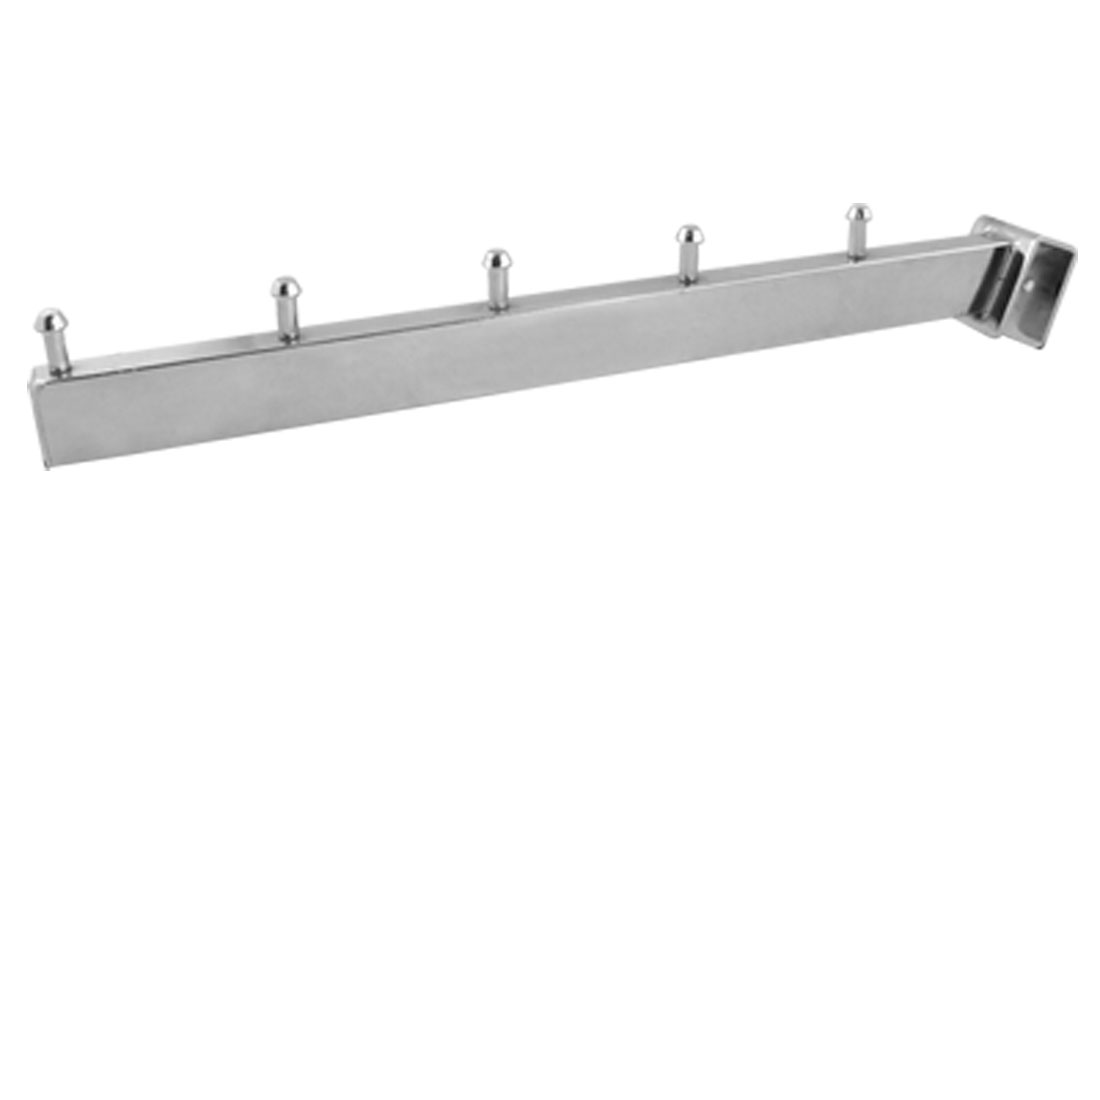 Waterfall Arm Rectangular Tubing 5 Sections Display Rack Hooks Silver Tone